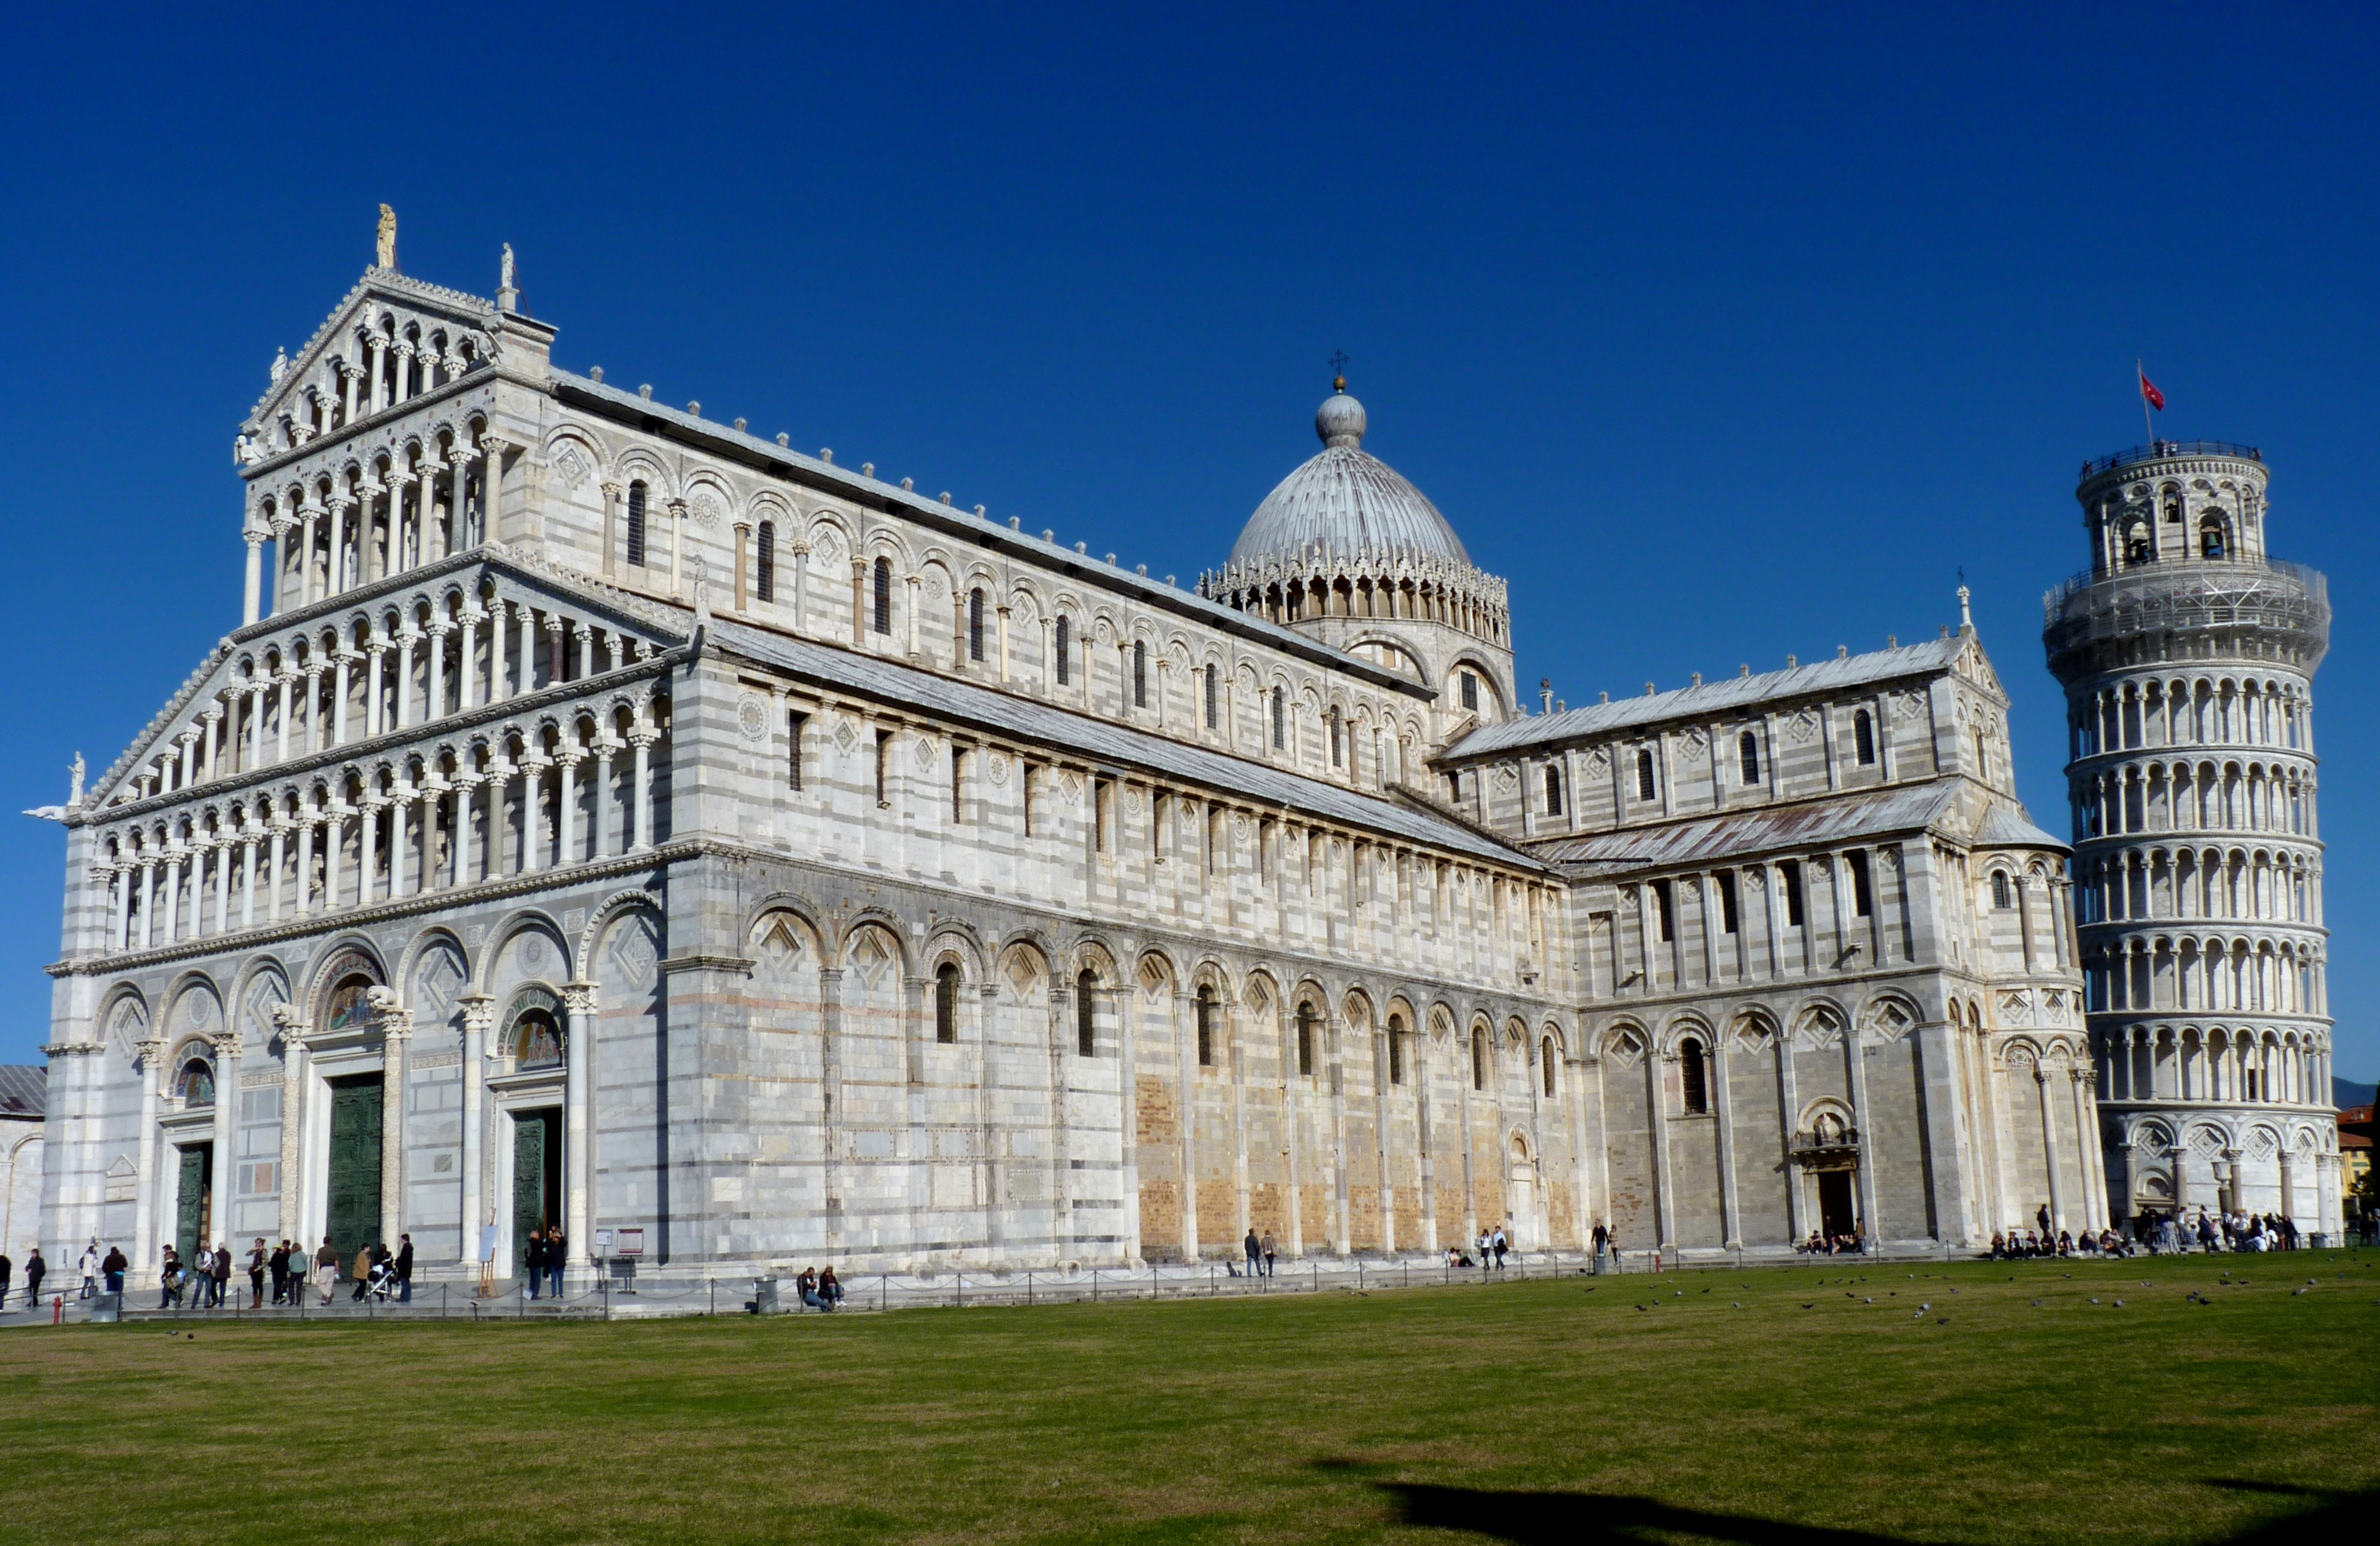 File:Piazza dei Miracoli - The Cathedral and the Leaning Tower in ...